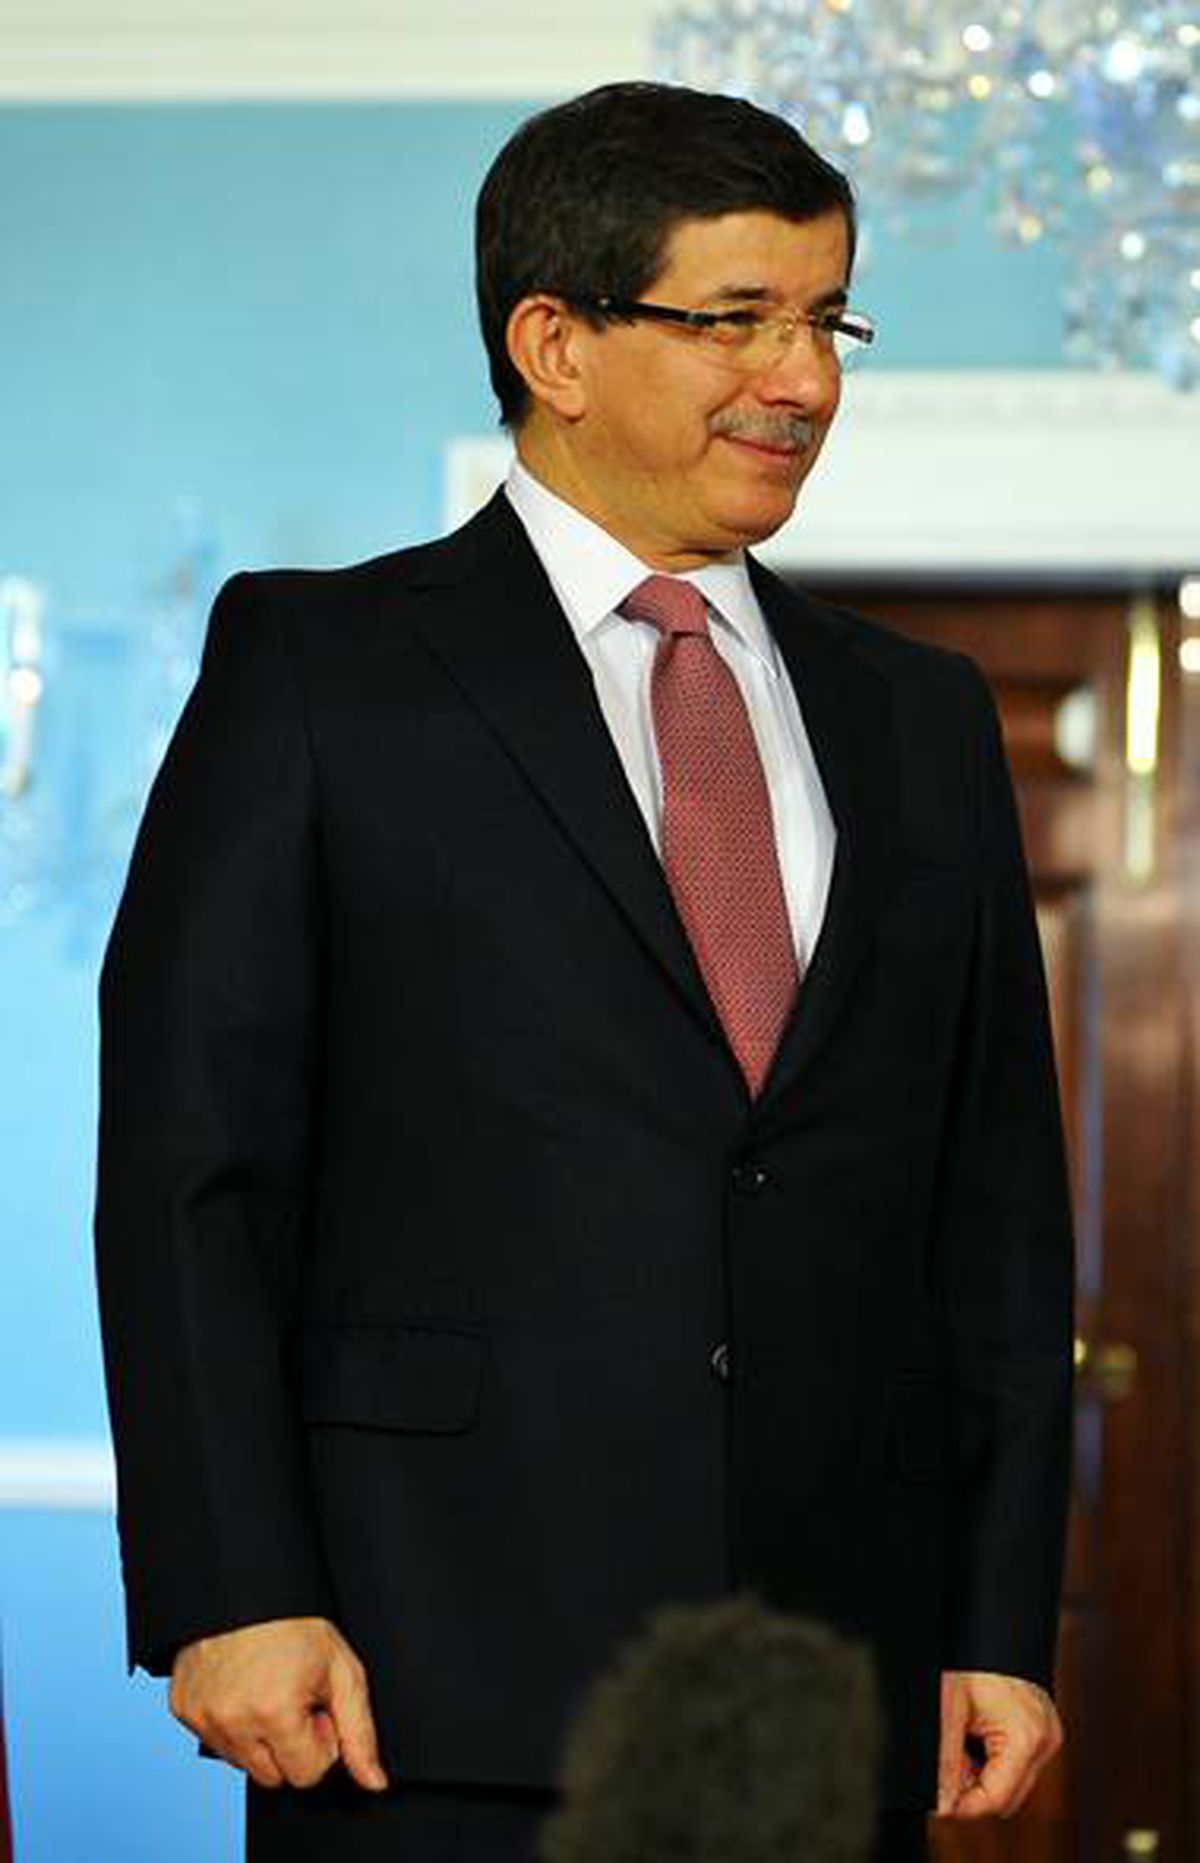 """TURKEY: One message describes Ahmet Davutoglu, Turkey's foreign minister, as """"exceptionally dangerous."""" The description of Mr. Davutoglu came before he was foreign minister in a 2004 cable that quoted Turkey's defence minister. Mr. Davutoglu brushed aside the cable, saying the WikiLeaks release would """"not affect our foreign policy."""" In another cable, diplomats portrayed the country's leadership as divided and permeated by Islamists and said advisers to Prime Minister Tayyip Erdogan had """"little understanding of politics beyond Ankara."""""""